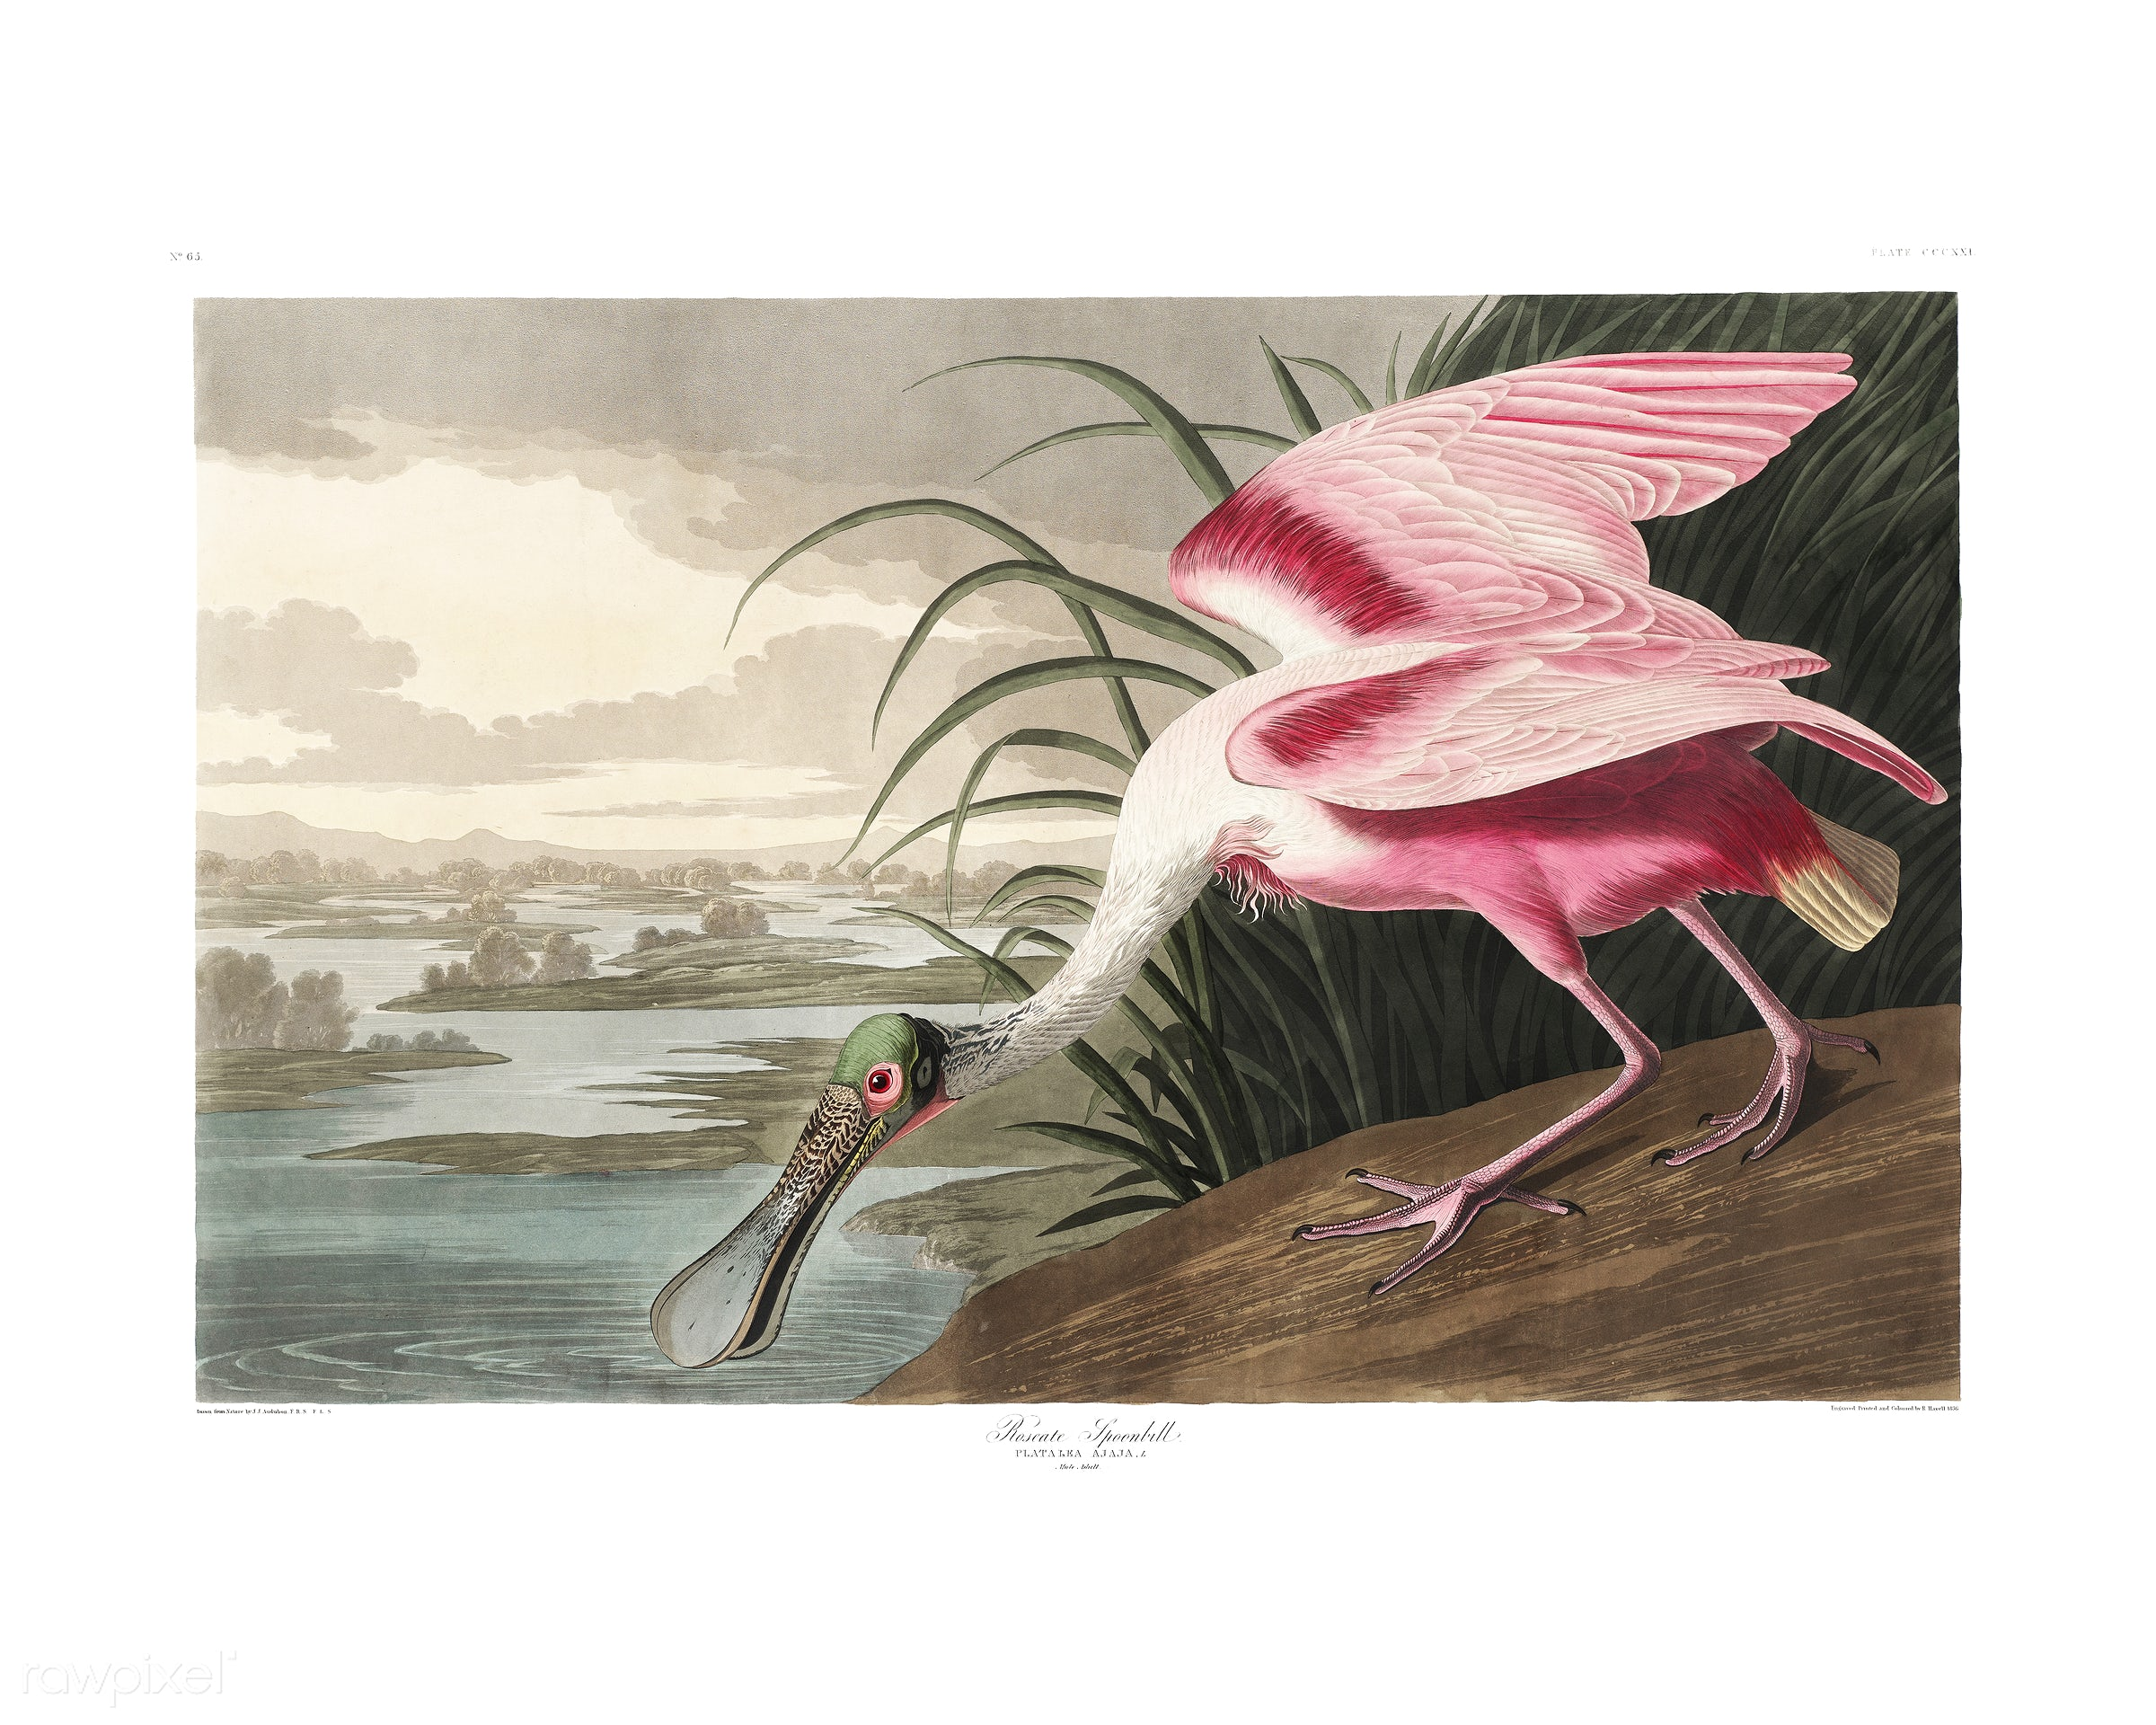 Roseate Spoonbill from Birds of America (1827) illustrated by John James Audubon (1785 - 1851), etched by Robert Havell (...